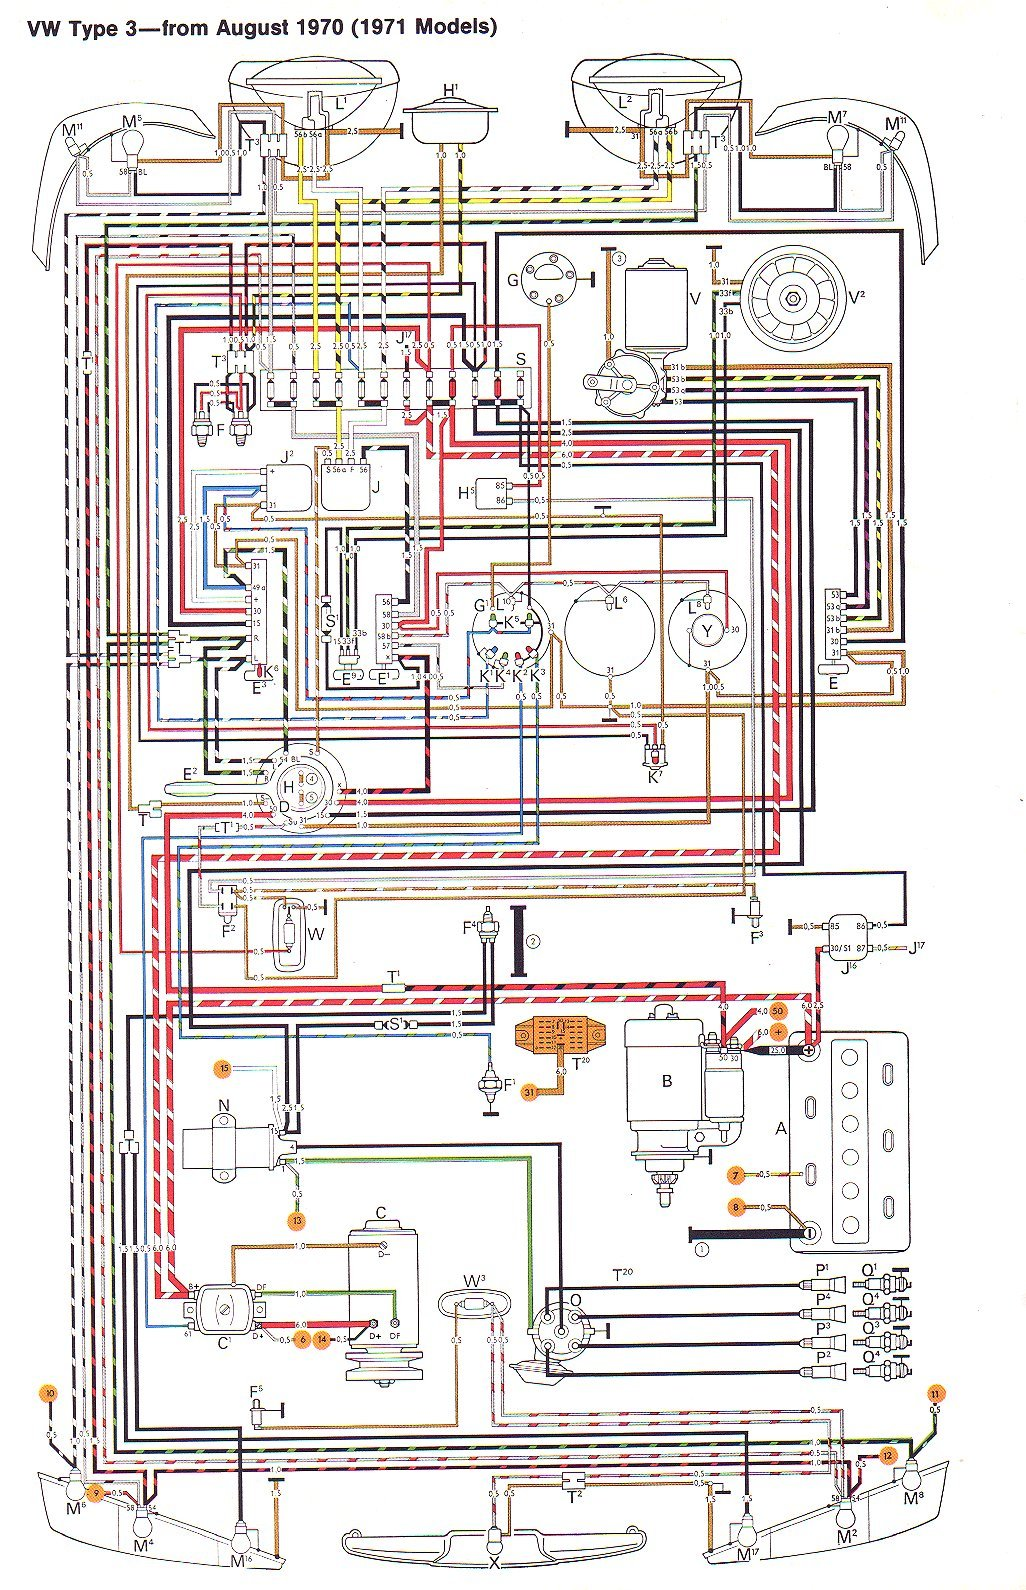 Vw Squareback Fuse Wiring - Wiring Diagram 500 on jaguar s type wiring diagram, vw type 1 maintenance, vw type 1 suspension, vw type 1 fuel pump, vw type 1 fuel gauge, vw type 1 exhaust, vw type 1 air conditioning, vw type 1 generator, vw type 1 fan belt, vw type 1 dimensions, vw type 1 body, vw type 1 flywheel, vw type 1 starter, vw type 1 brakes, vw type 1 wheels, vw type 1 frame, volkswagen type 3 wiring diagram, vw type 1 torque specs,